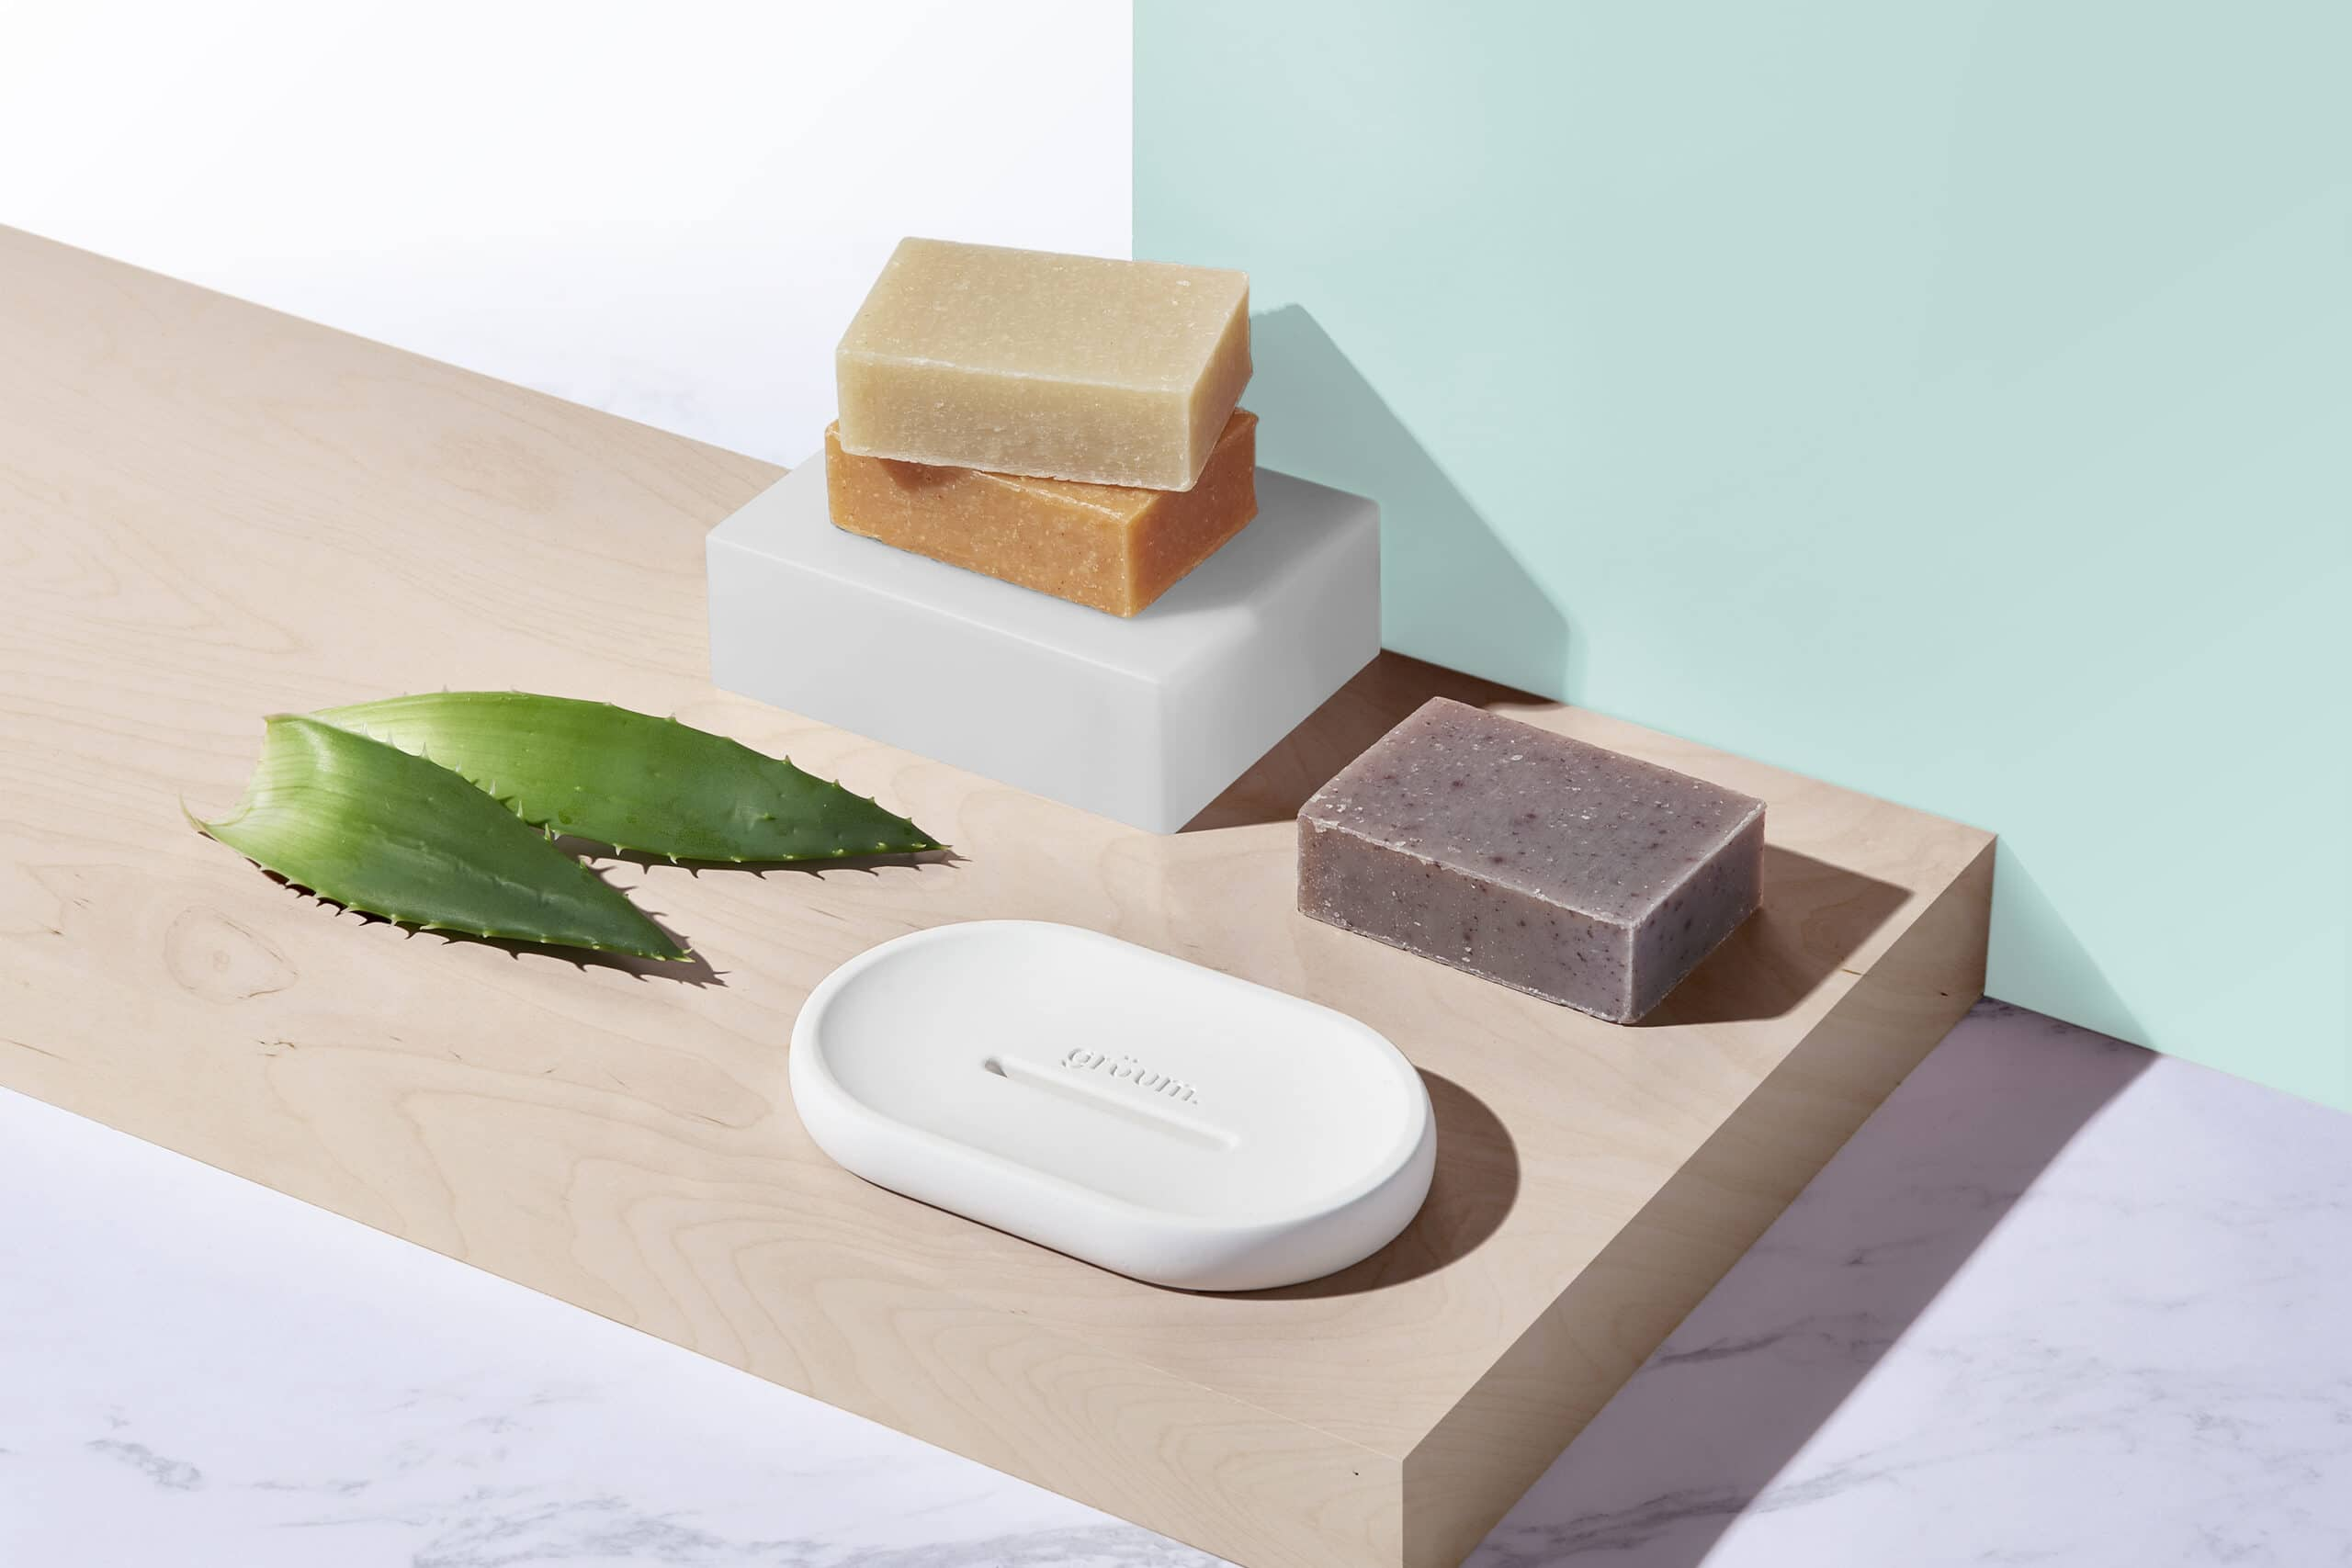 Gruum Body bar gift set product image with 3x body bars and halla soap dish